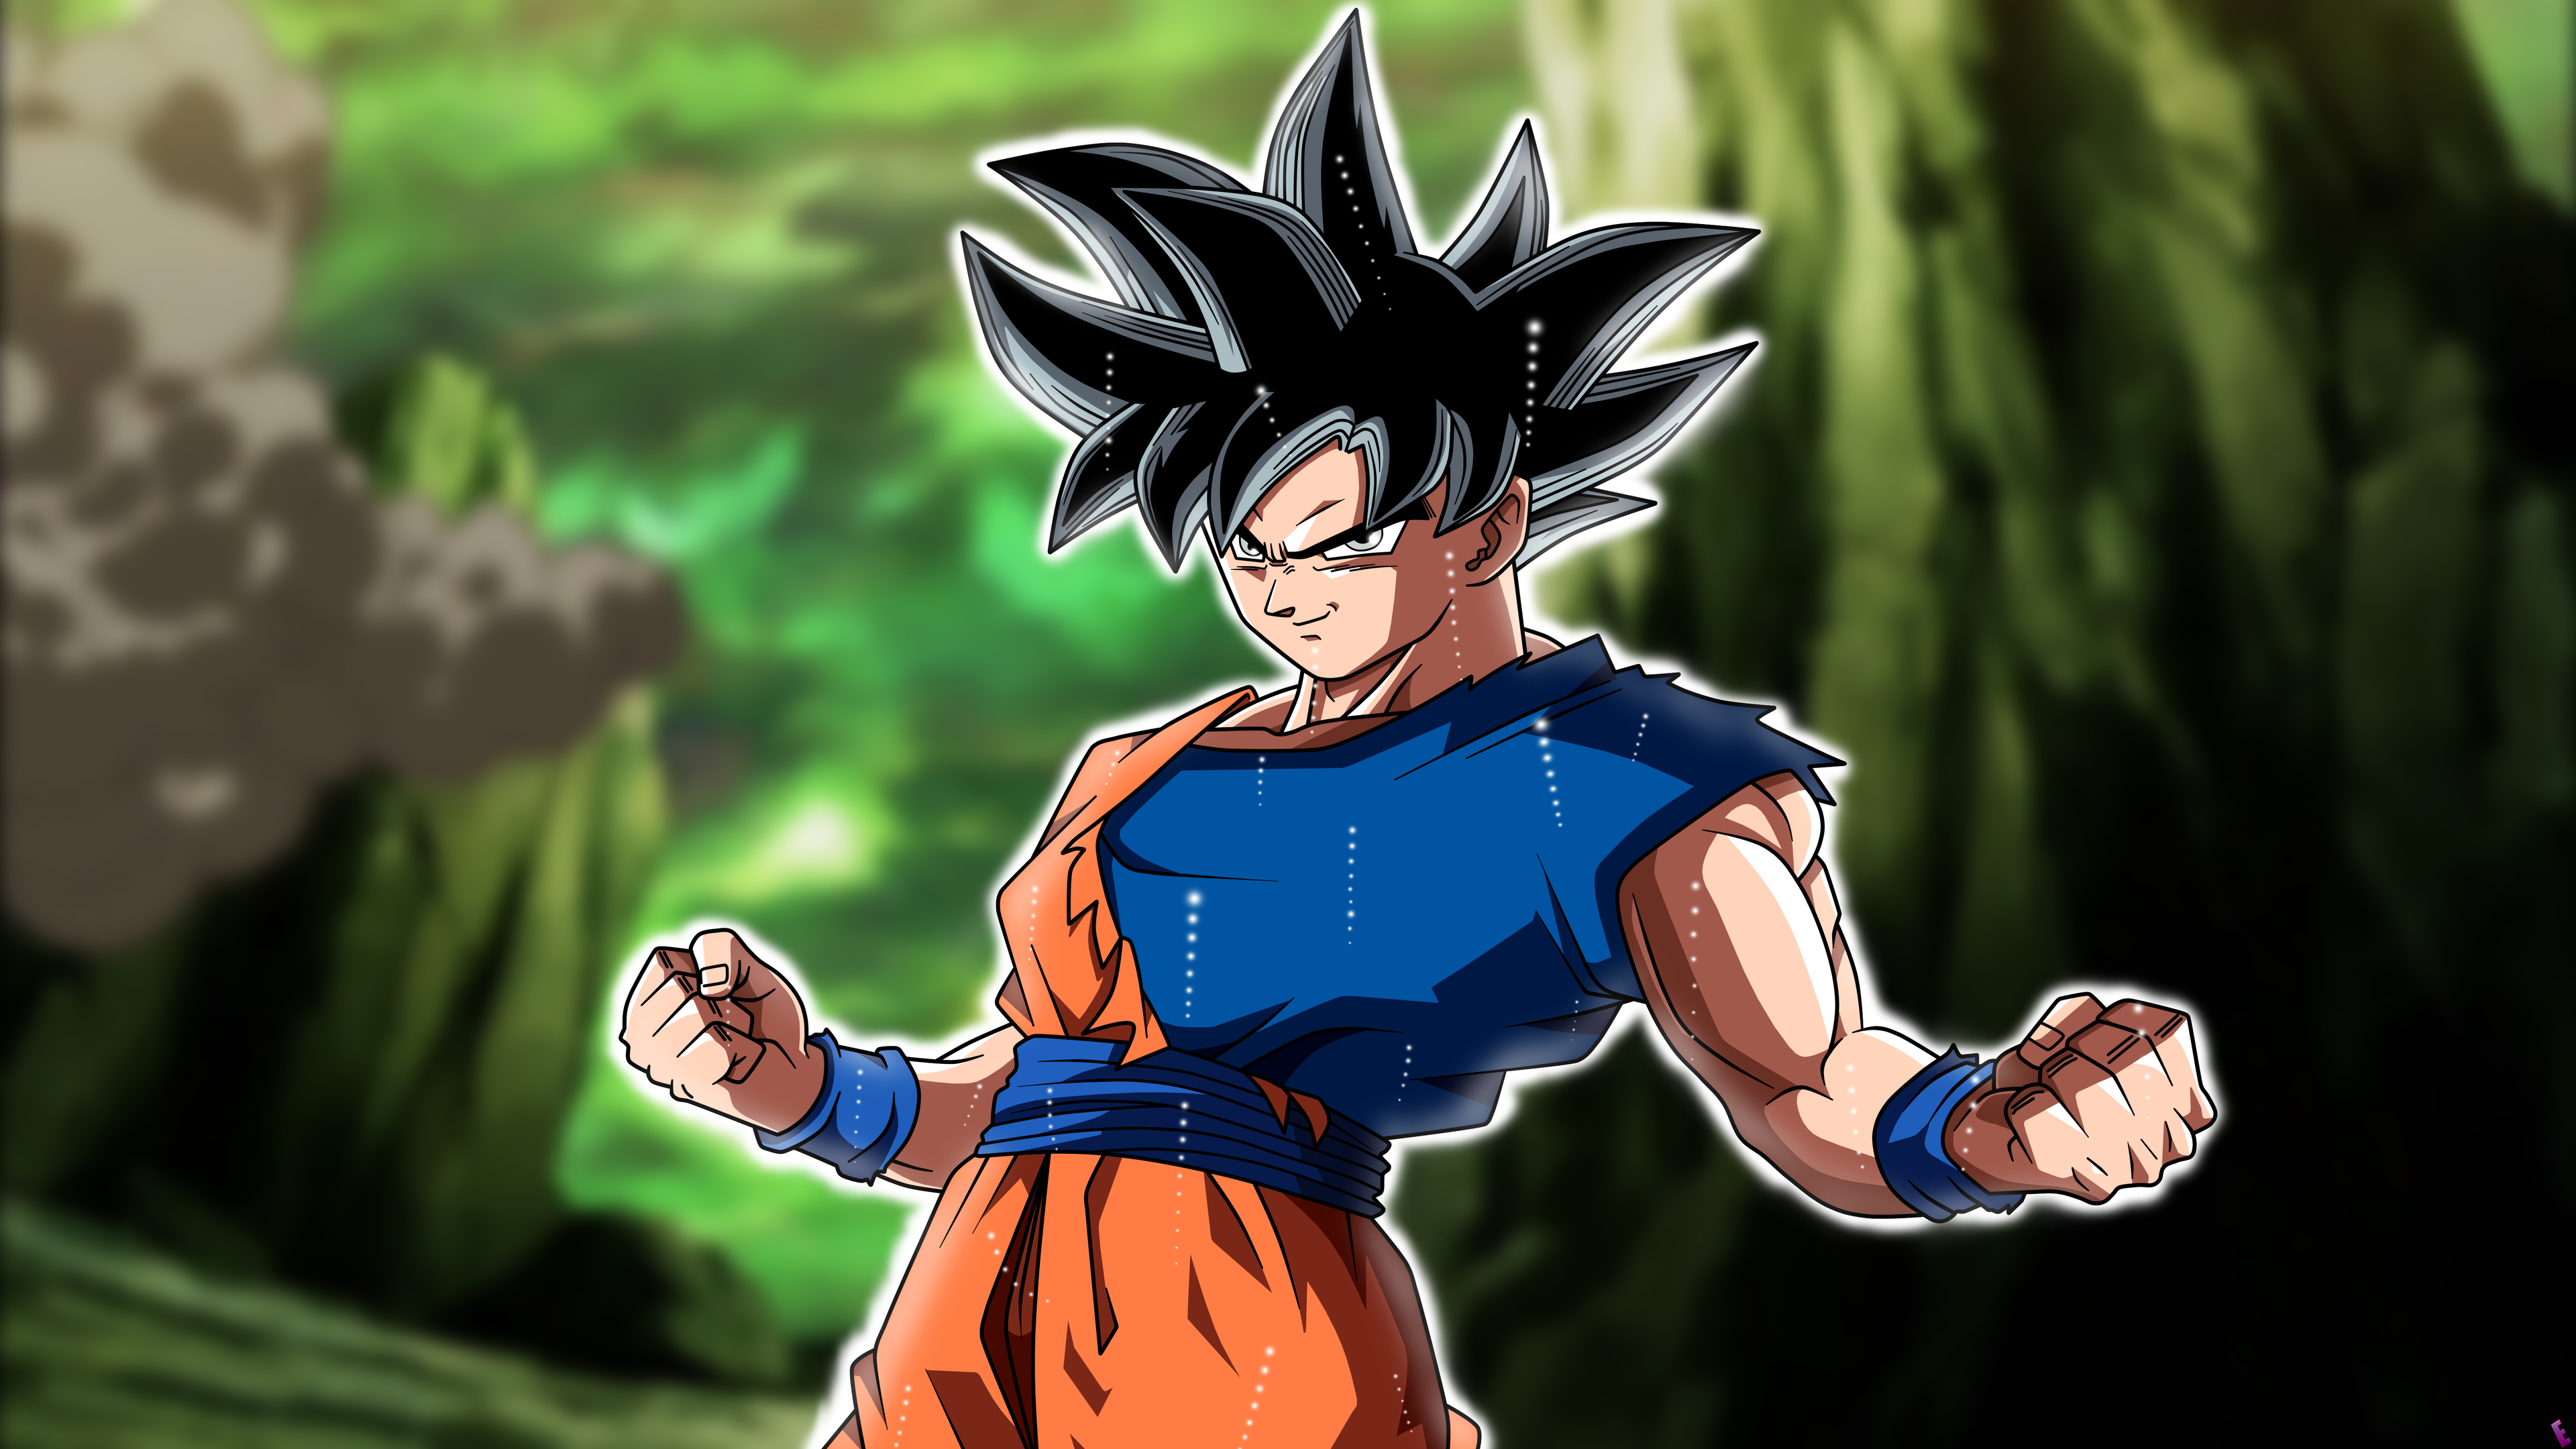 goku dragon ball super 4k 2018 1541973930 - Goku Dragon Ball Super 4k 2018 - hd-wallpapers, goku wallpapers, dragon ball wallpapers, dragon ball super wallpapers, artist wallpapers, anime wallpapers, 4k-wallpapers